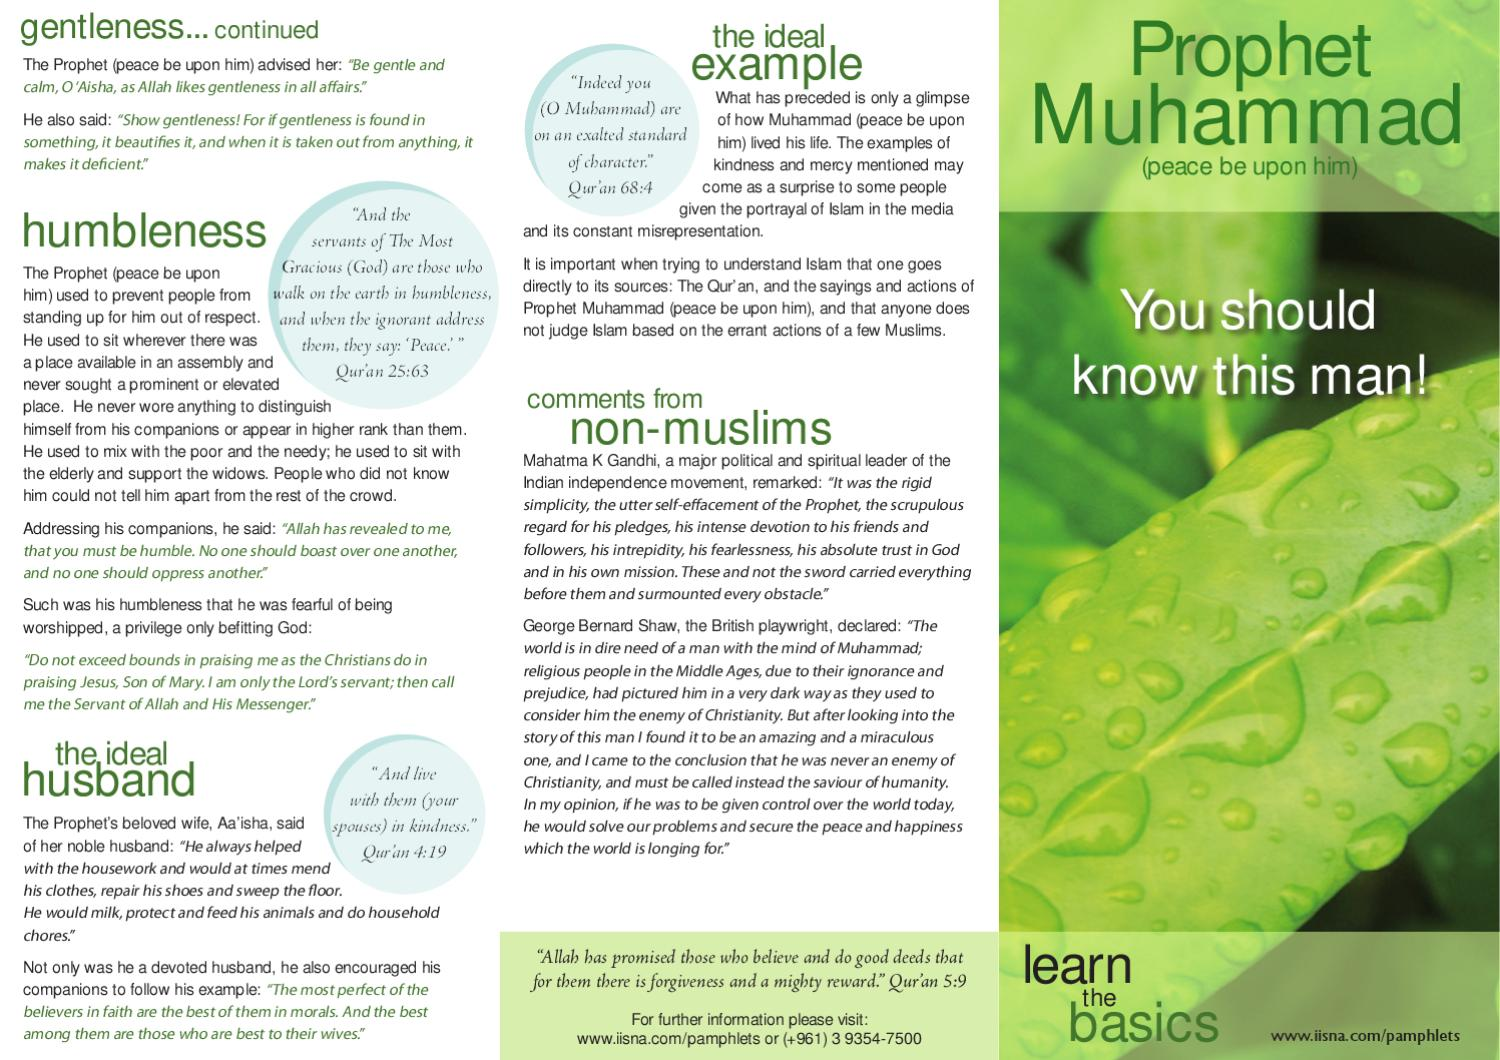 Prophet Muhammad ( peace be upon him ) You Should know this